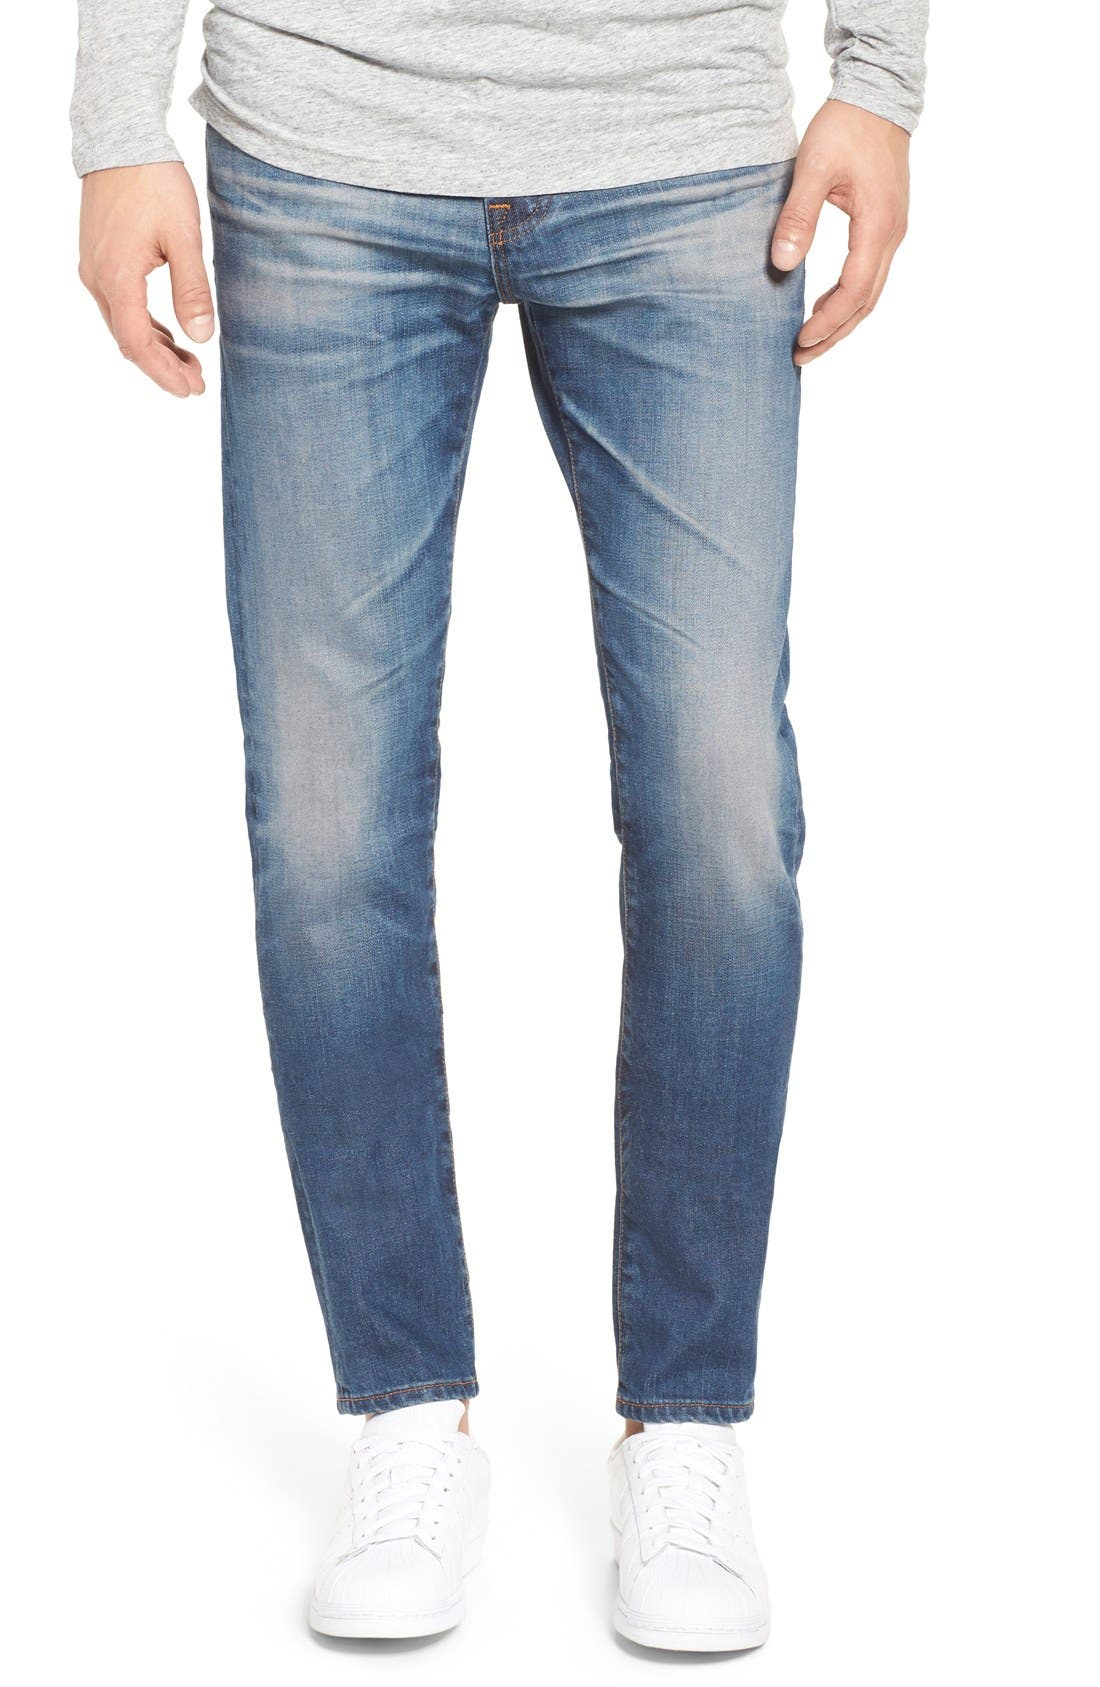 AG 'Stockton' Skinny Fit Jeans, Main, color, 425